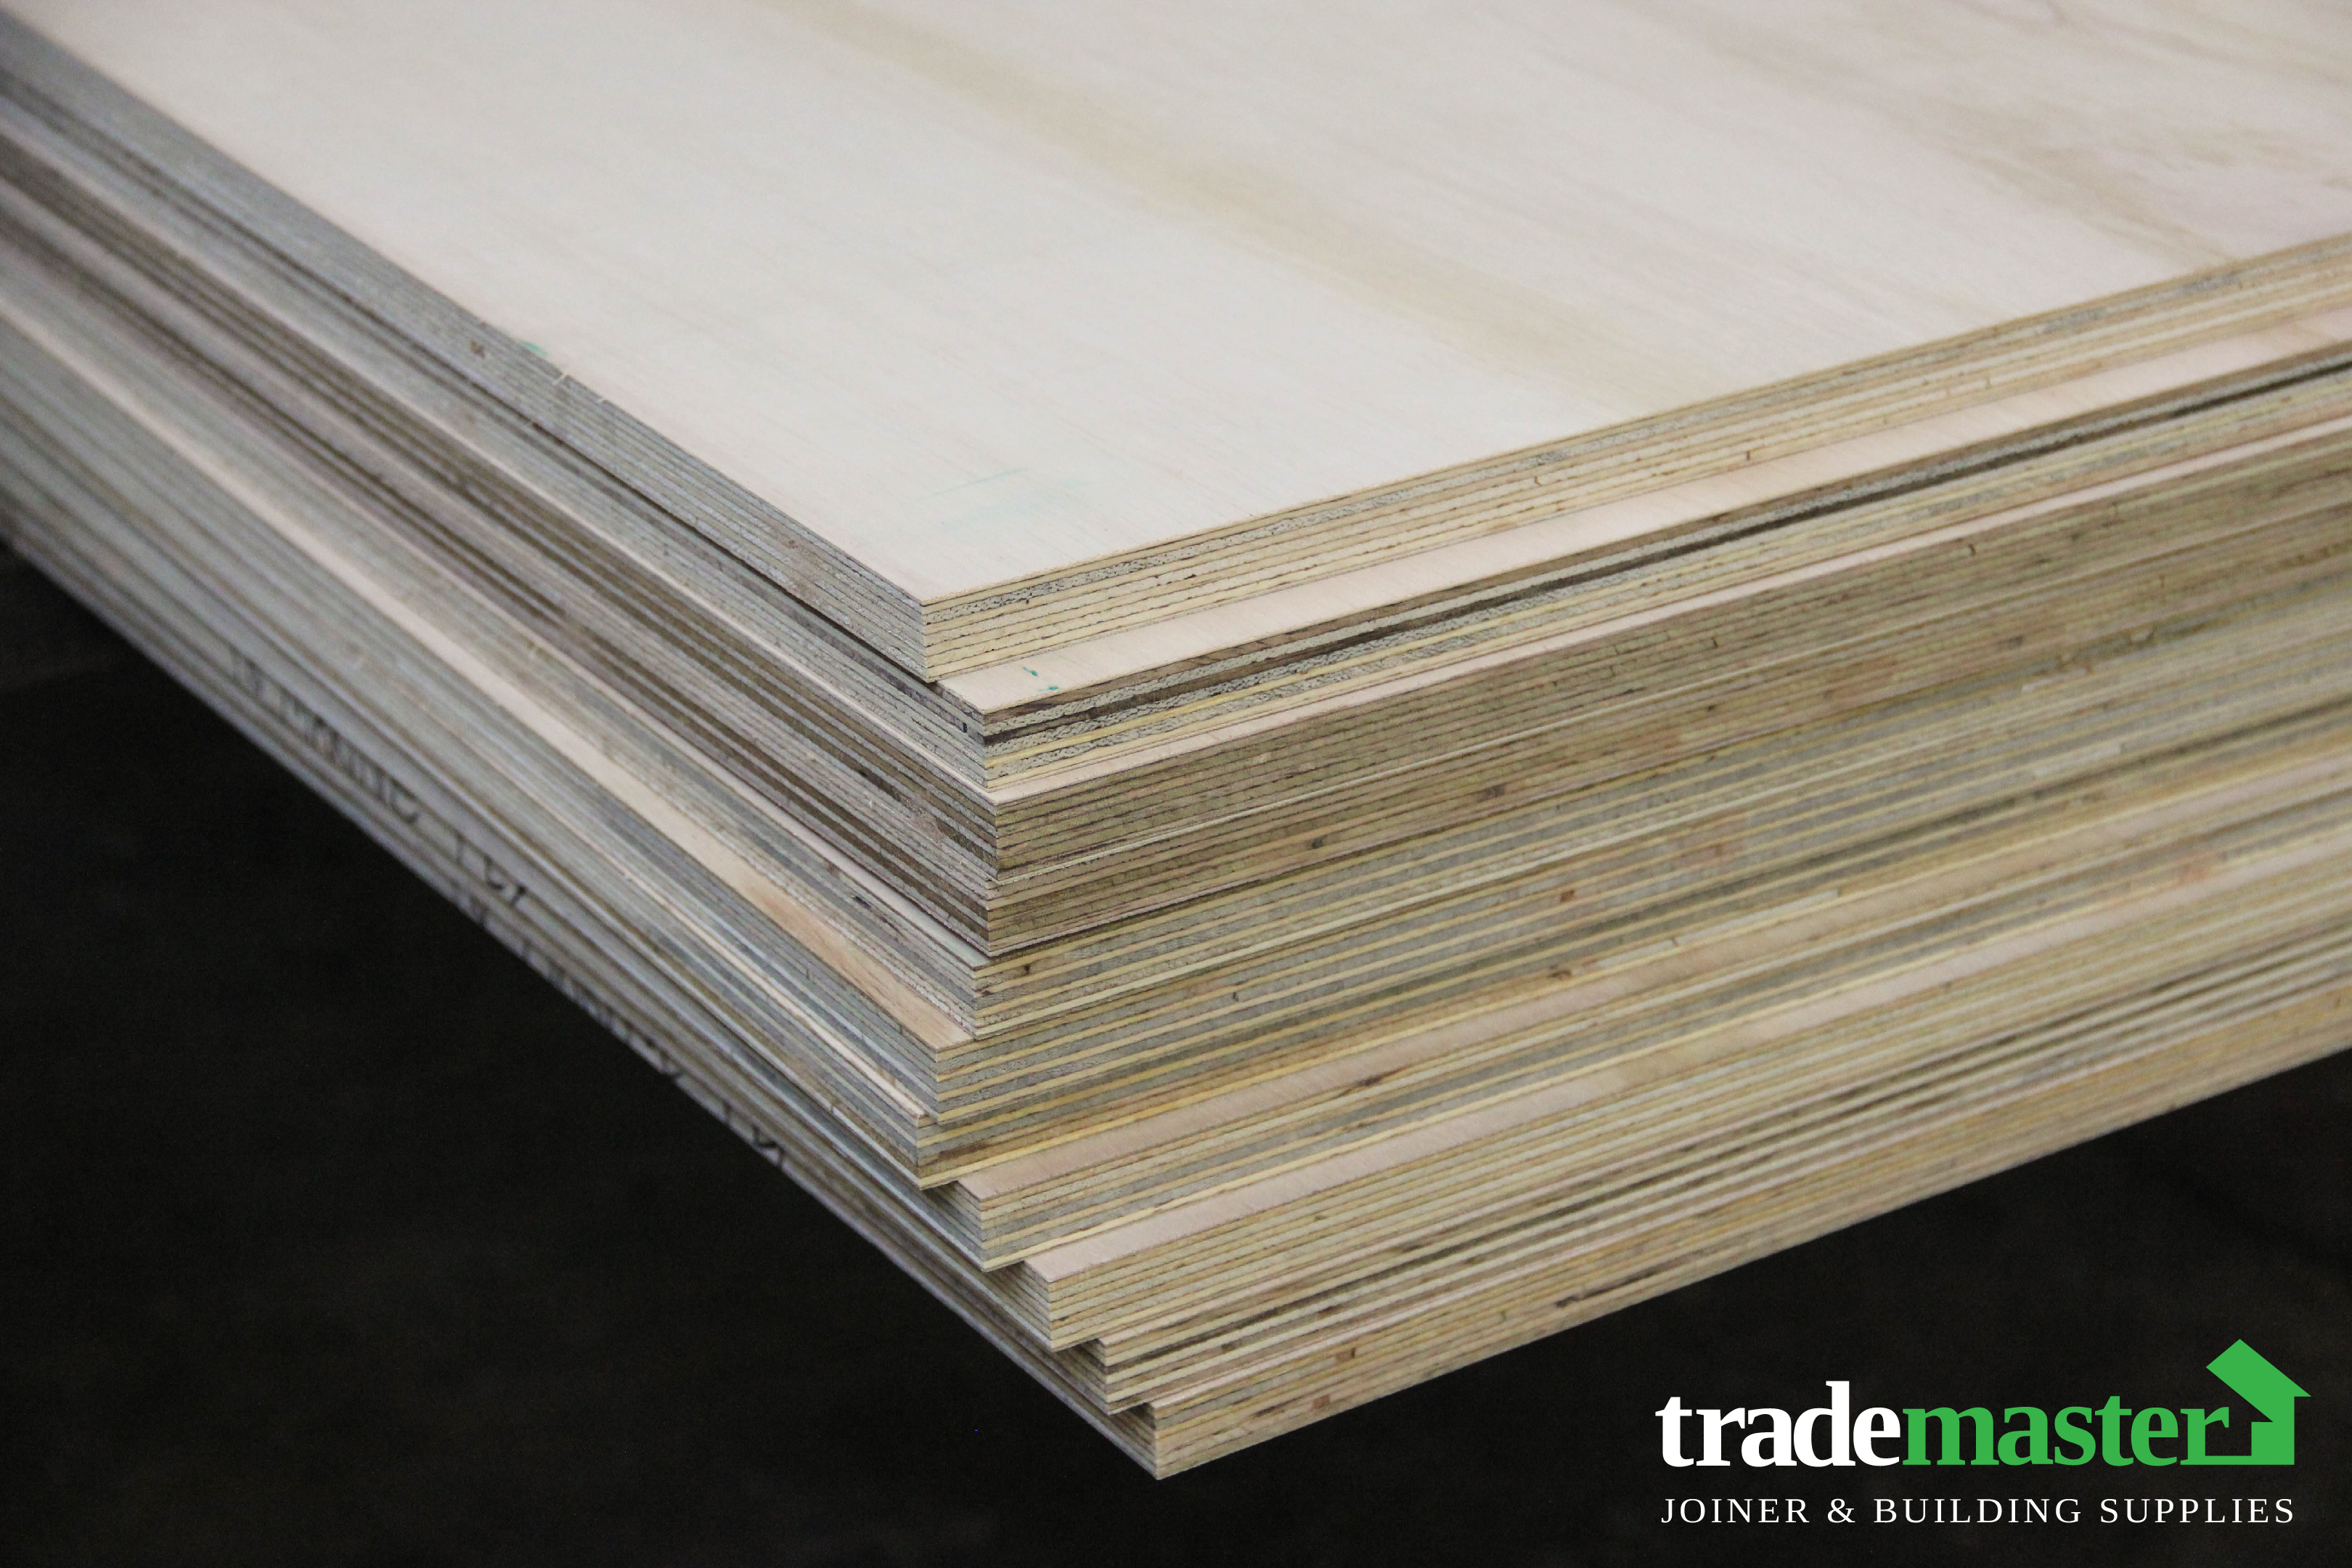 Marine Plywood 2400x1200x18mm Trademaster